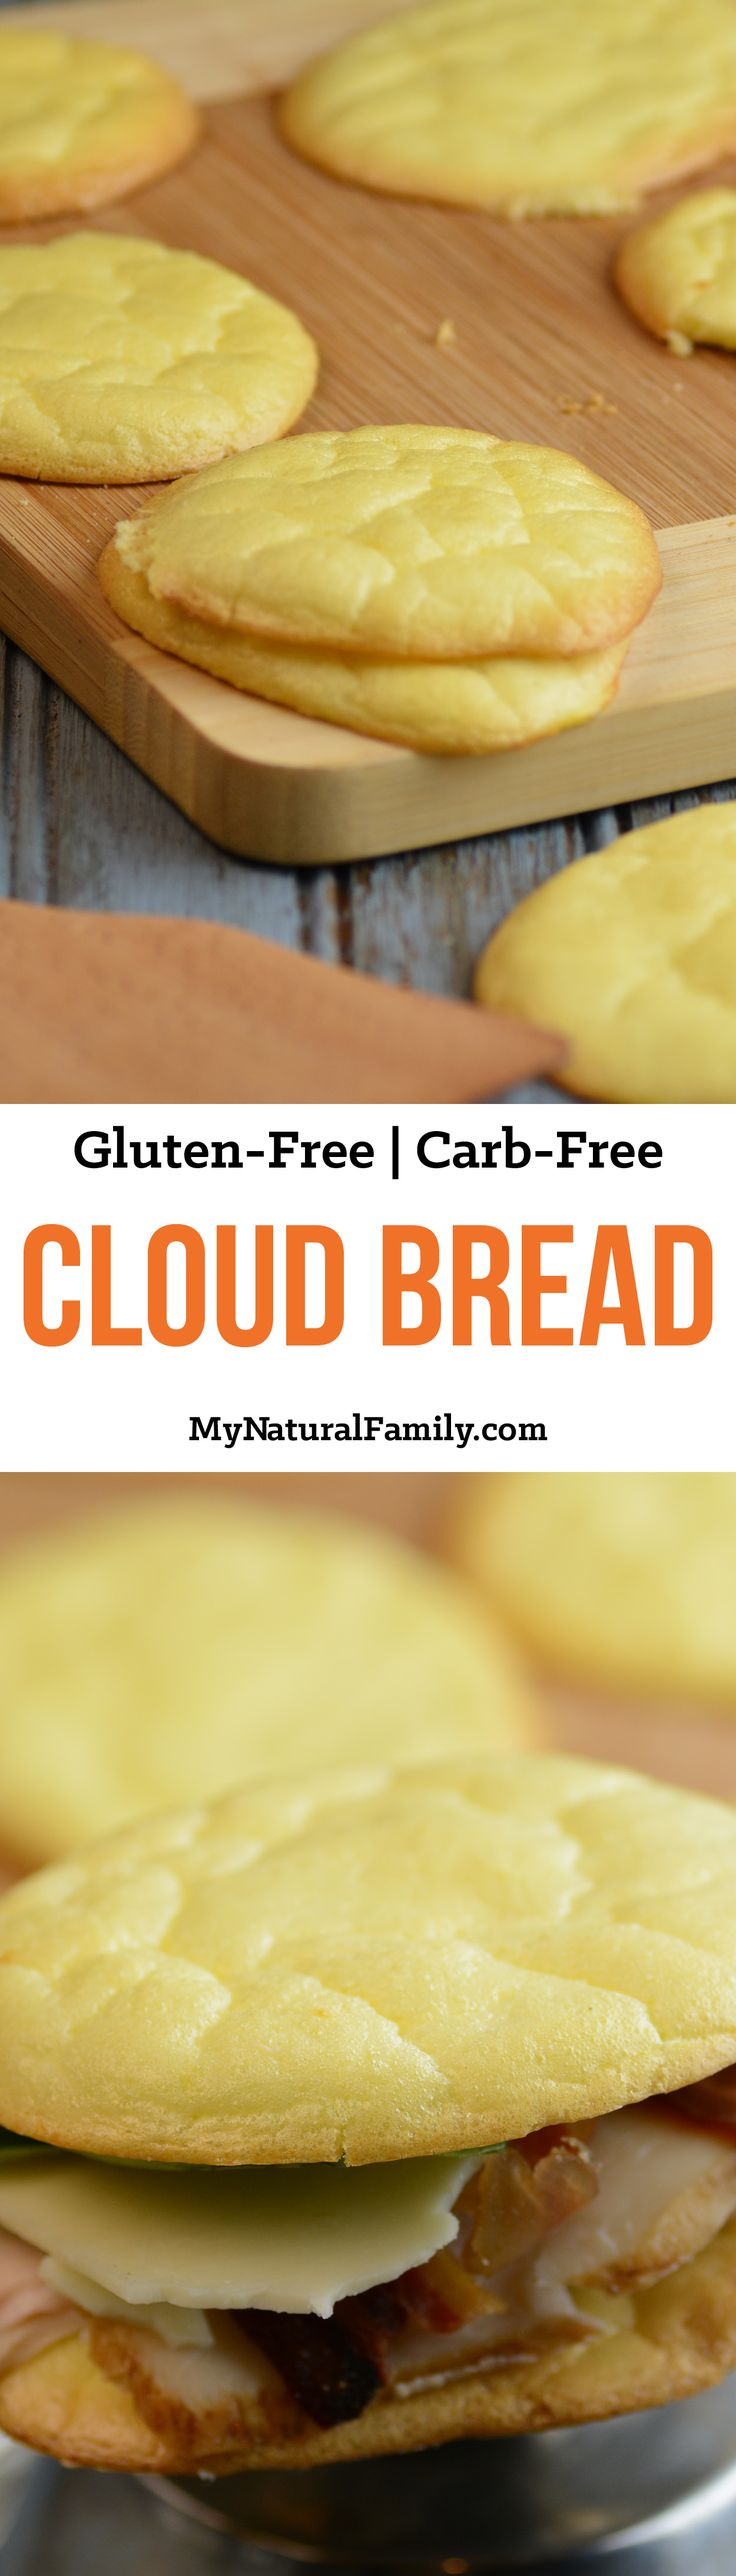 4-Ingredient Cloud Bread Recipe {Gluten-Free, Carb-Free} \u2013 Plus Ideas of How to Use It